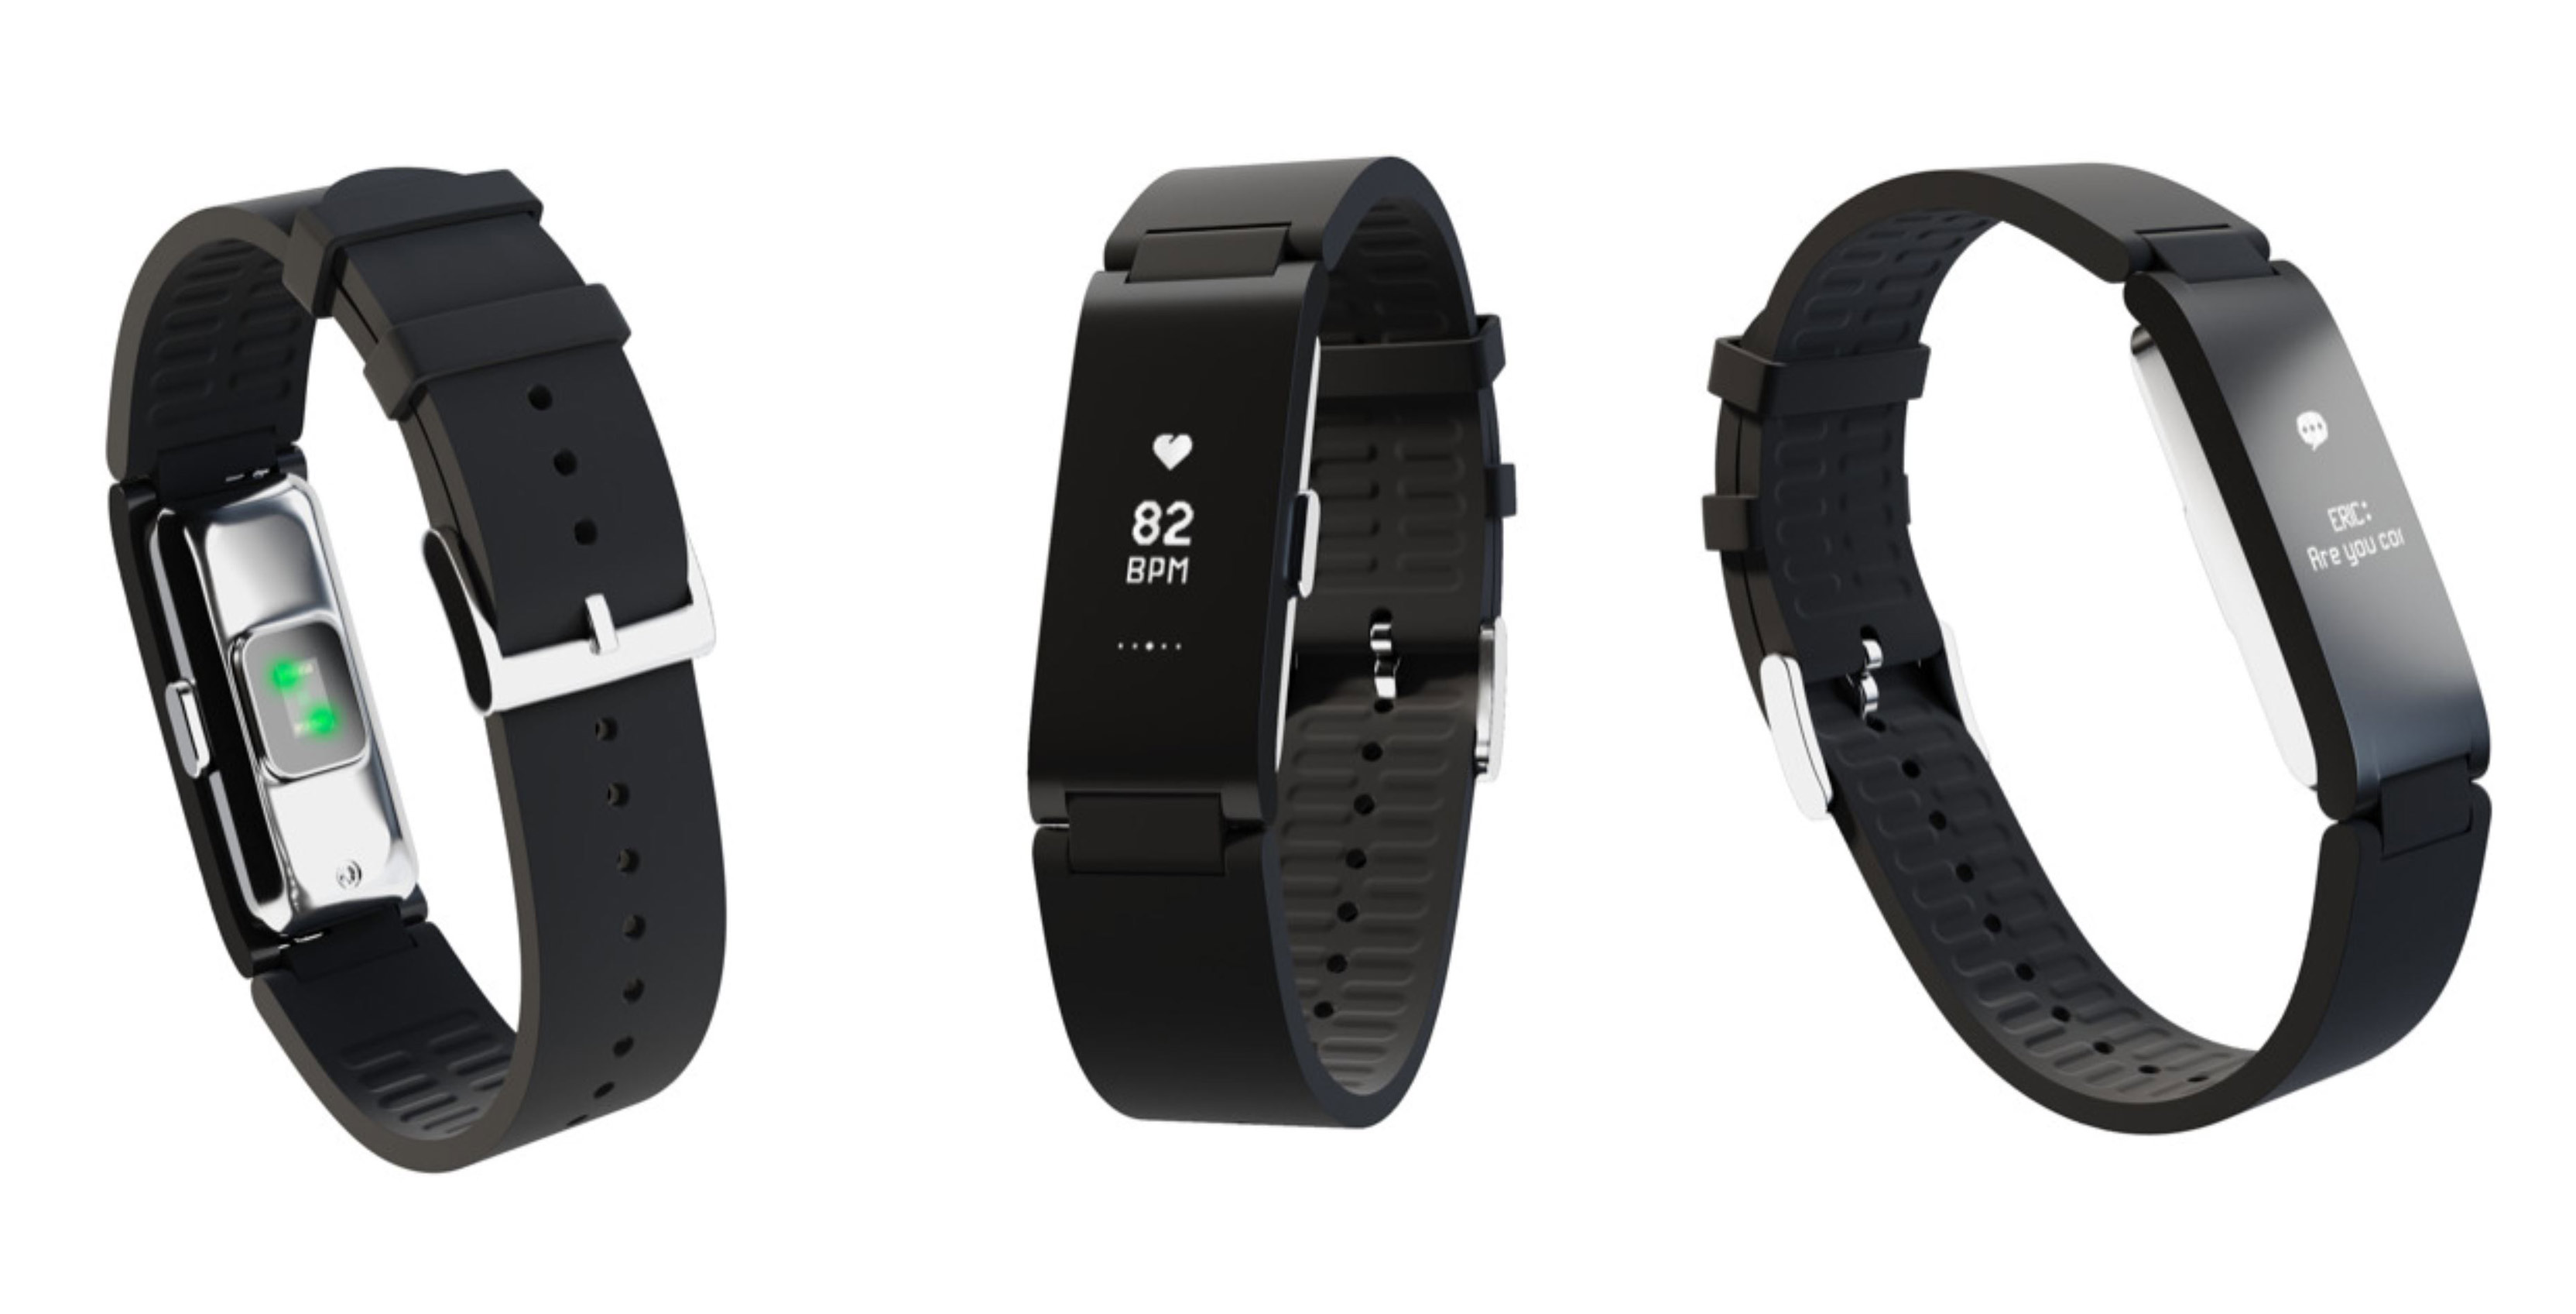 Withings Pulse HR marks a new step into fitness bands